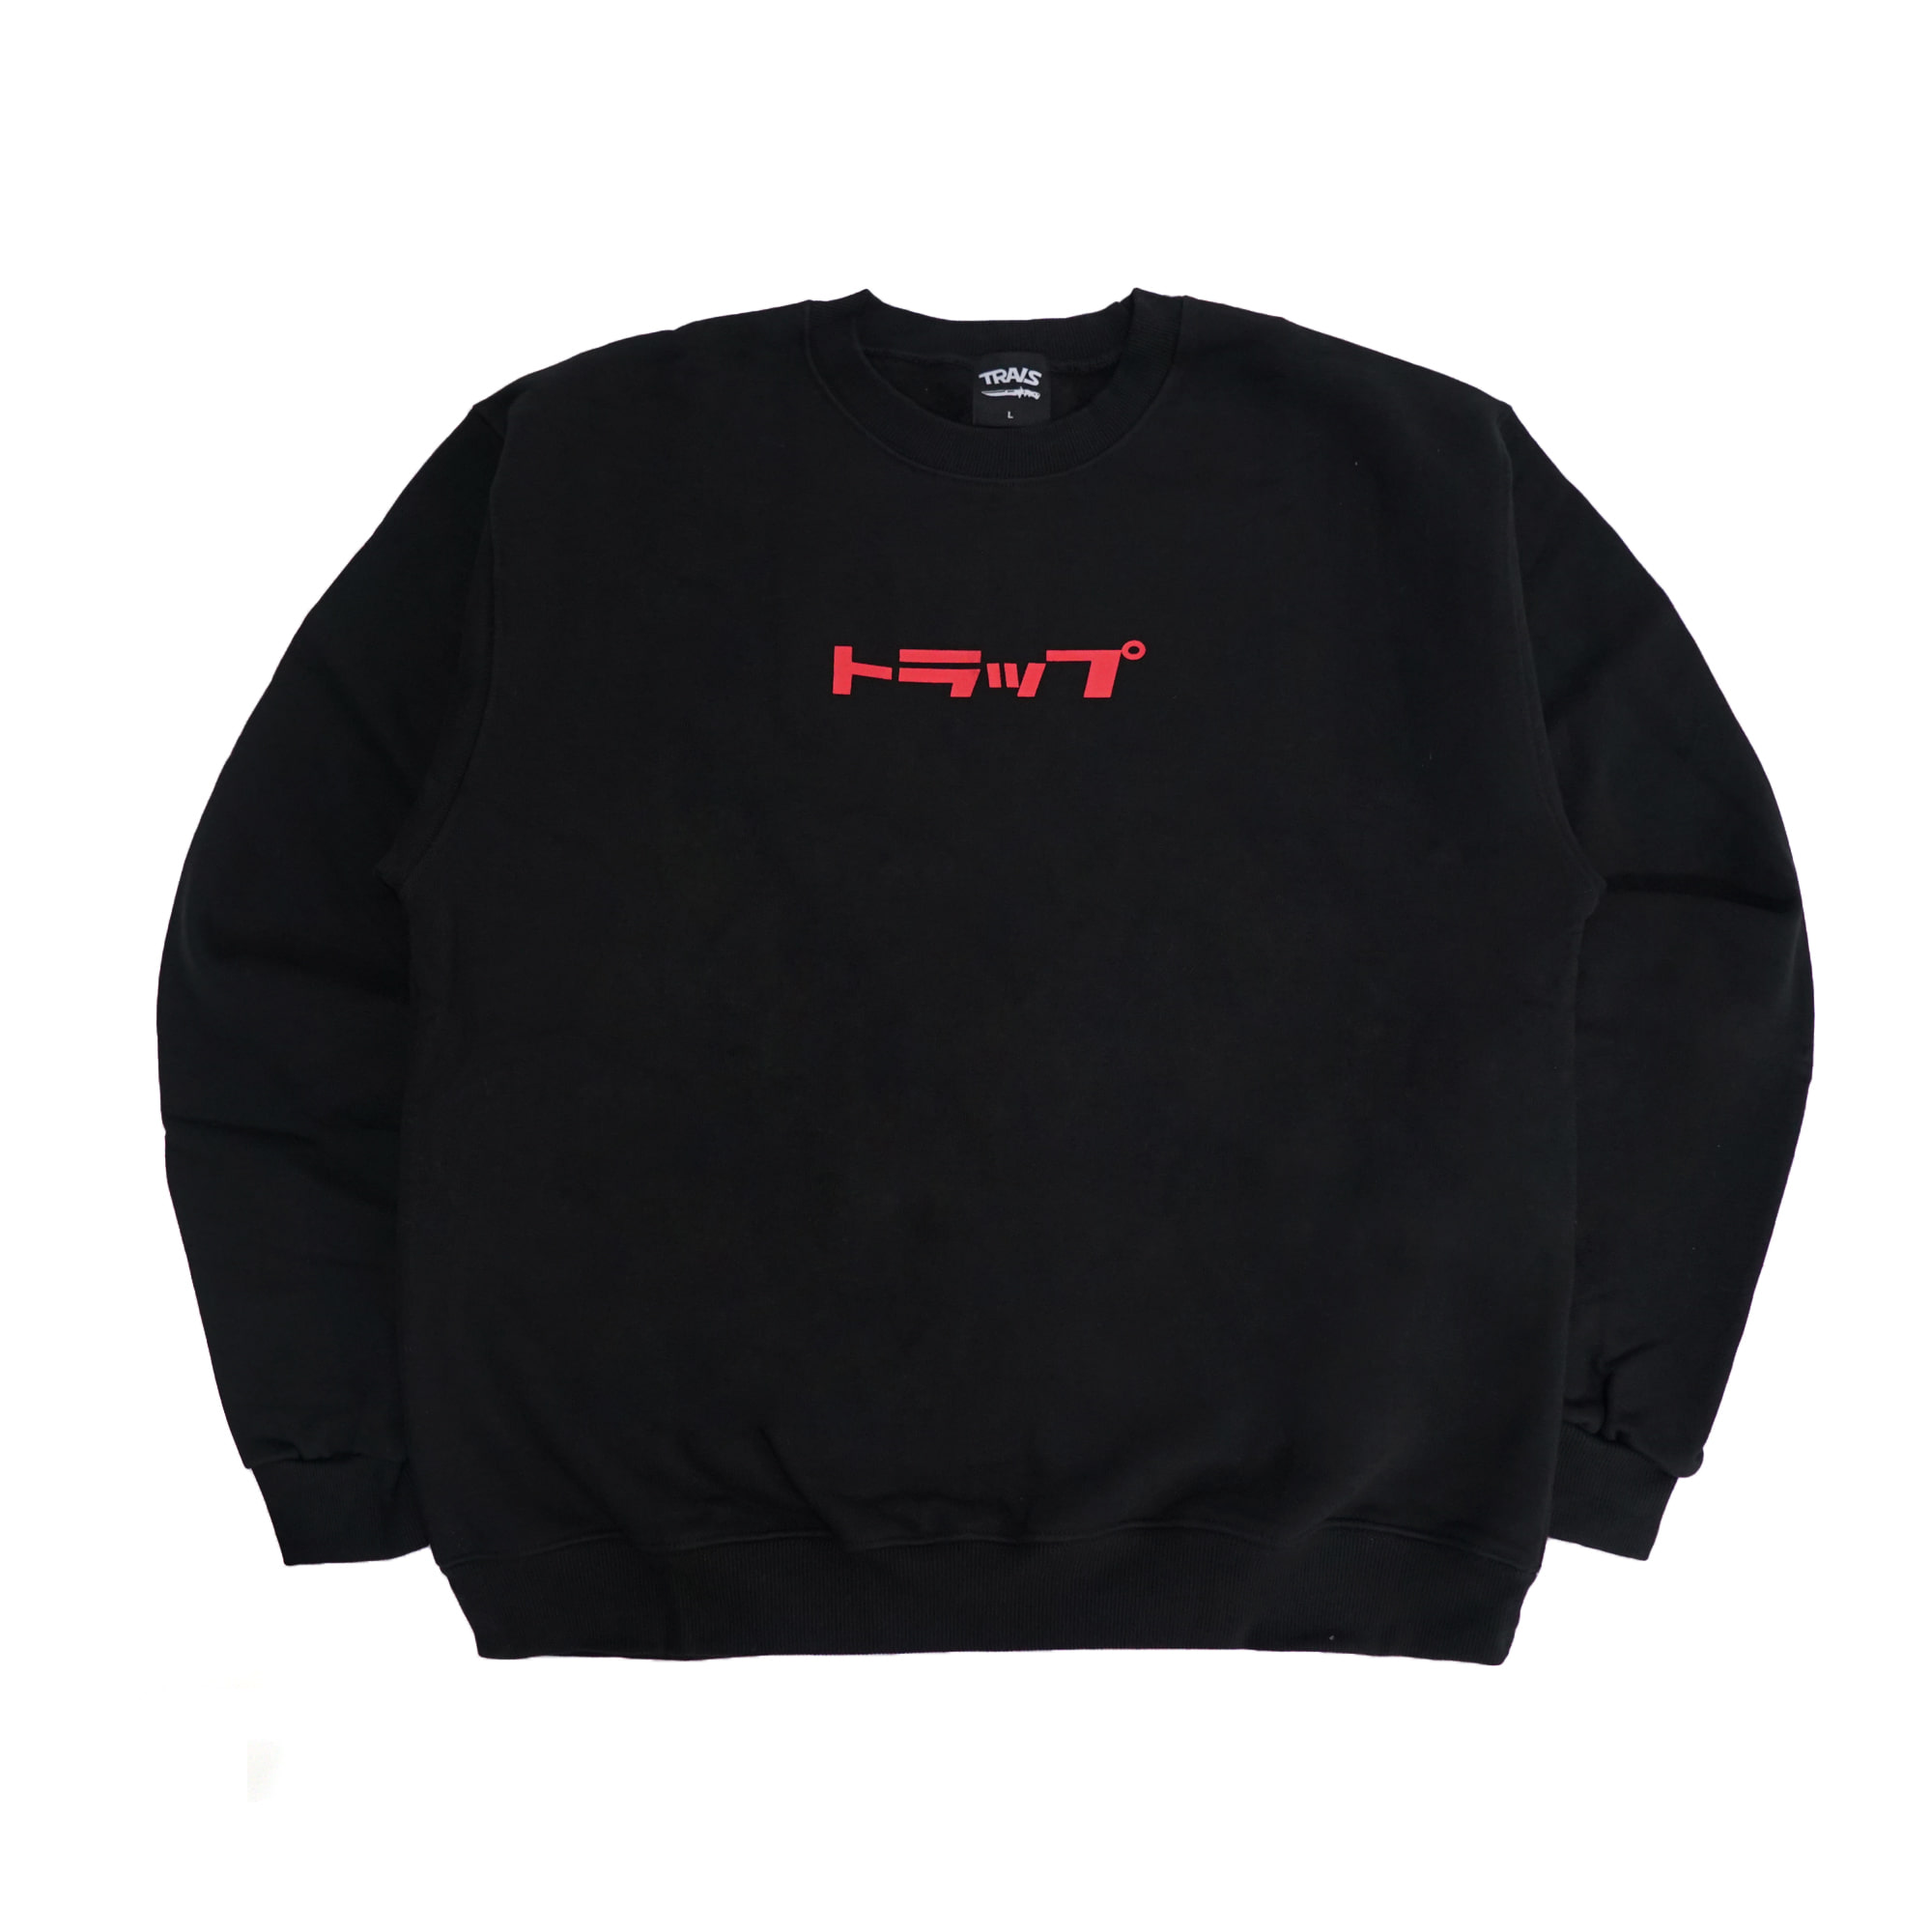 [TRAVS] トラップ TRAP CREWNECK SWEATSHIRTS - BLACK / NEON RED